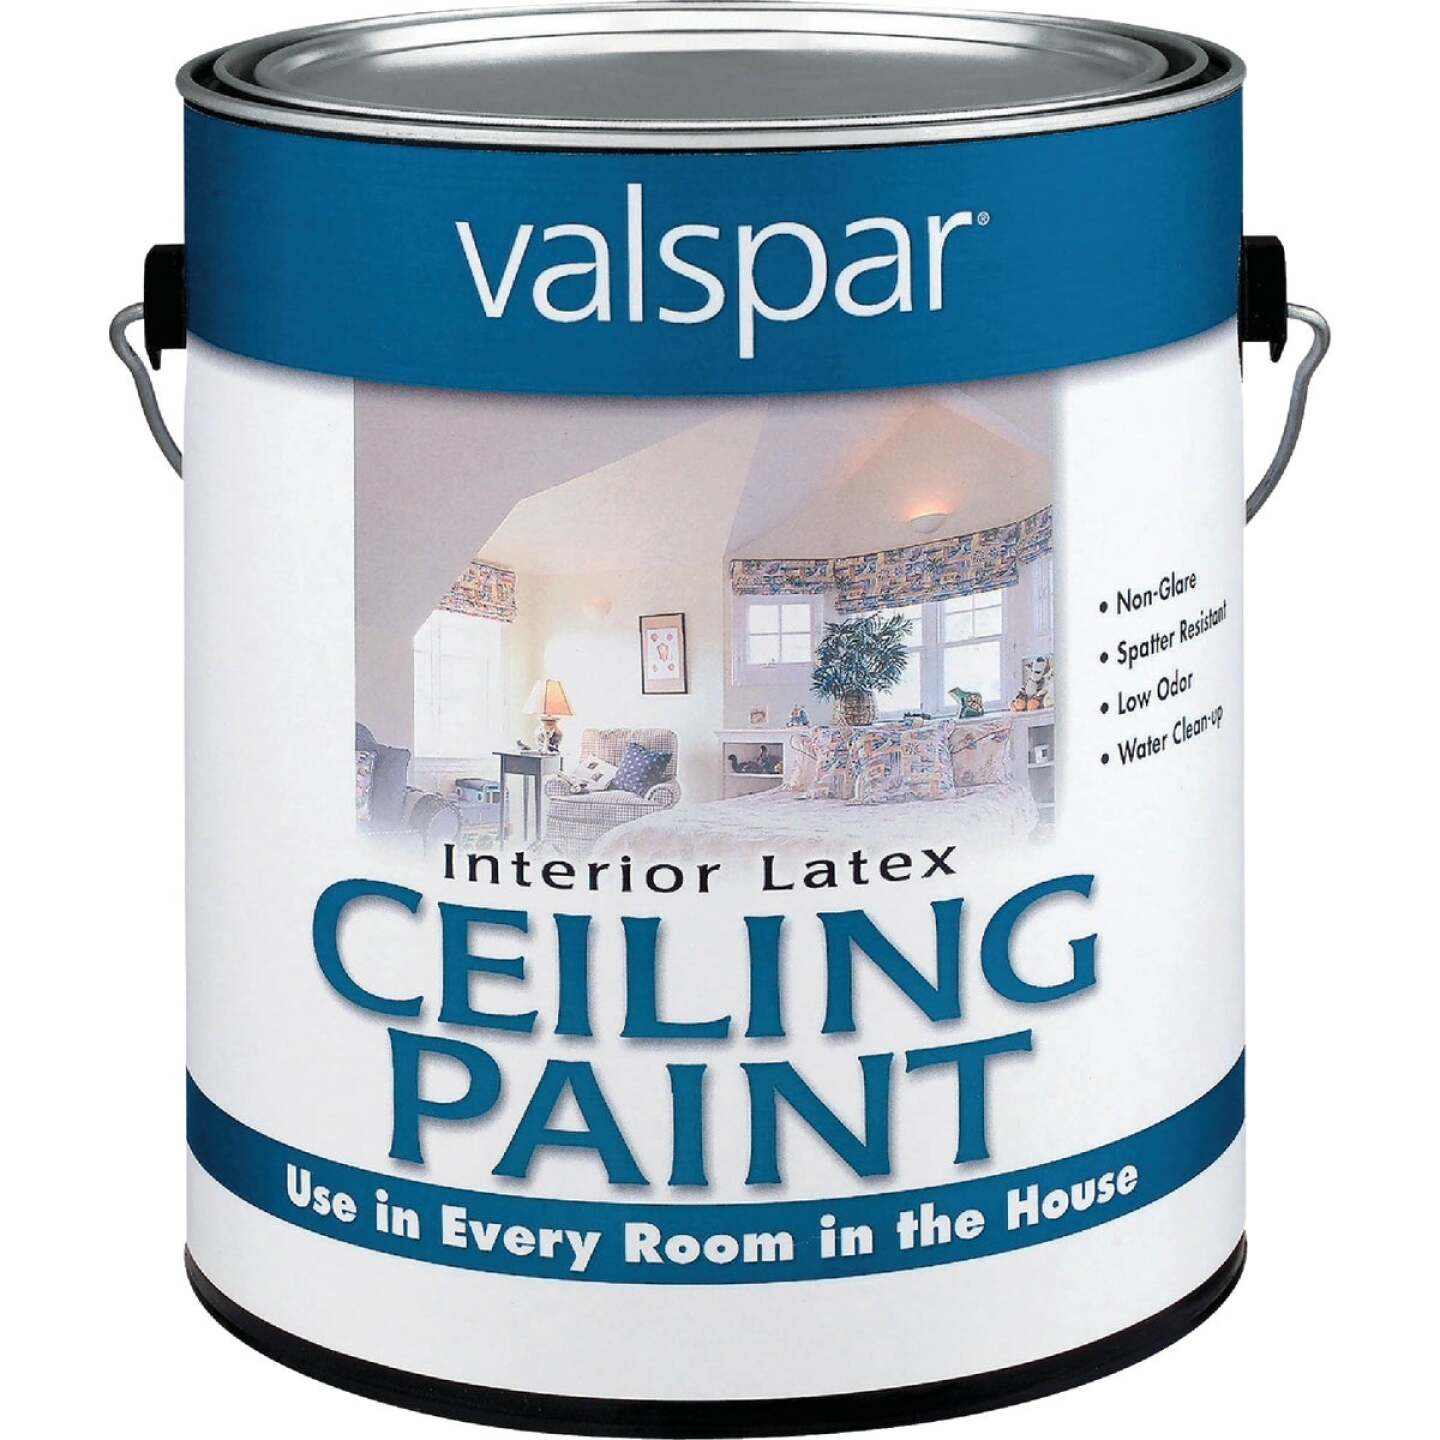 Valspar Latex Flat Ceiling Paint, White, 1 Gal. Image 1